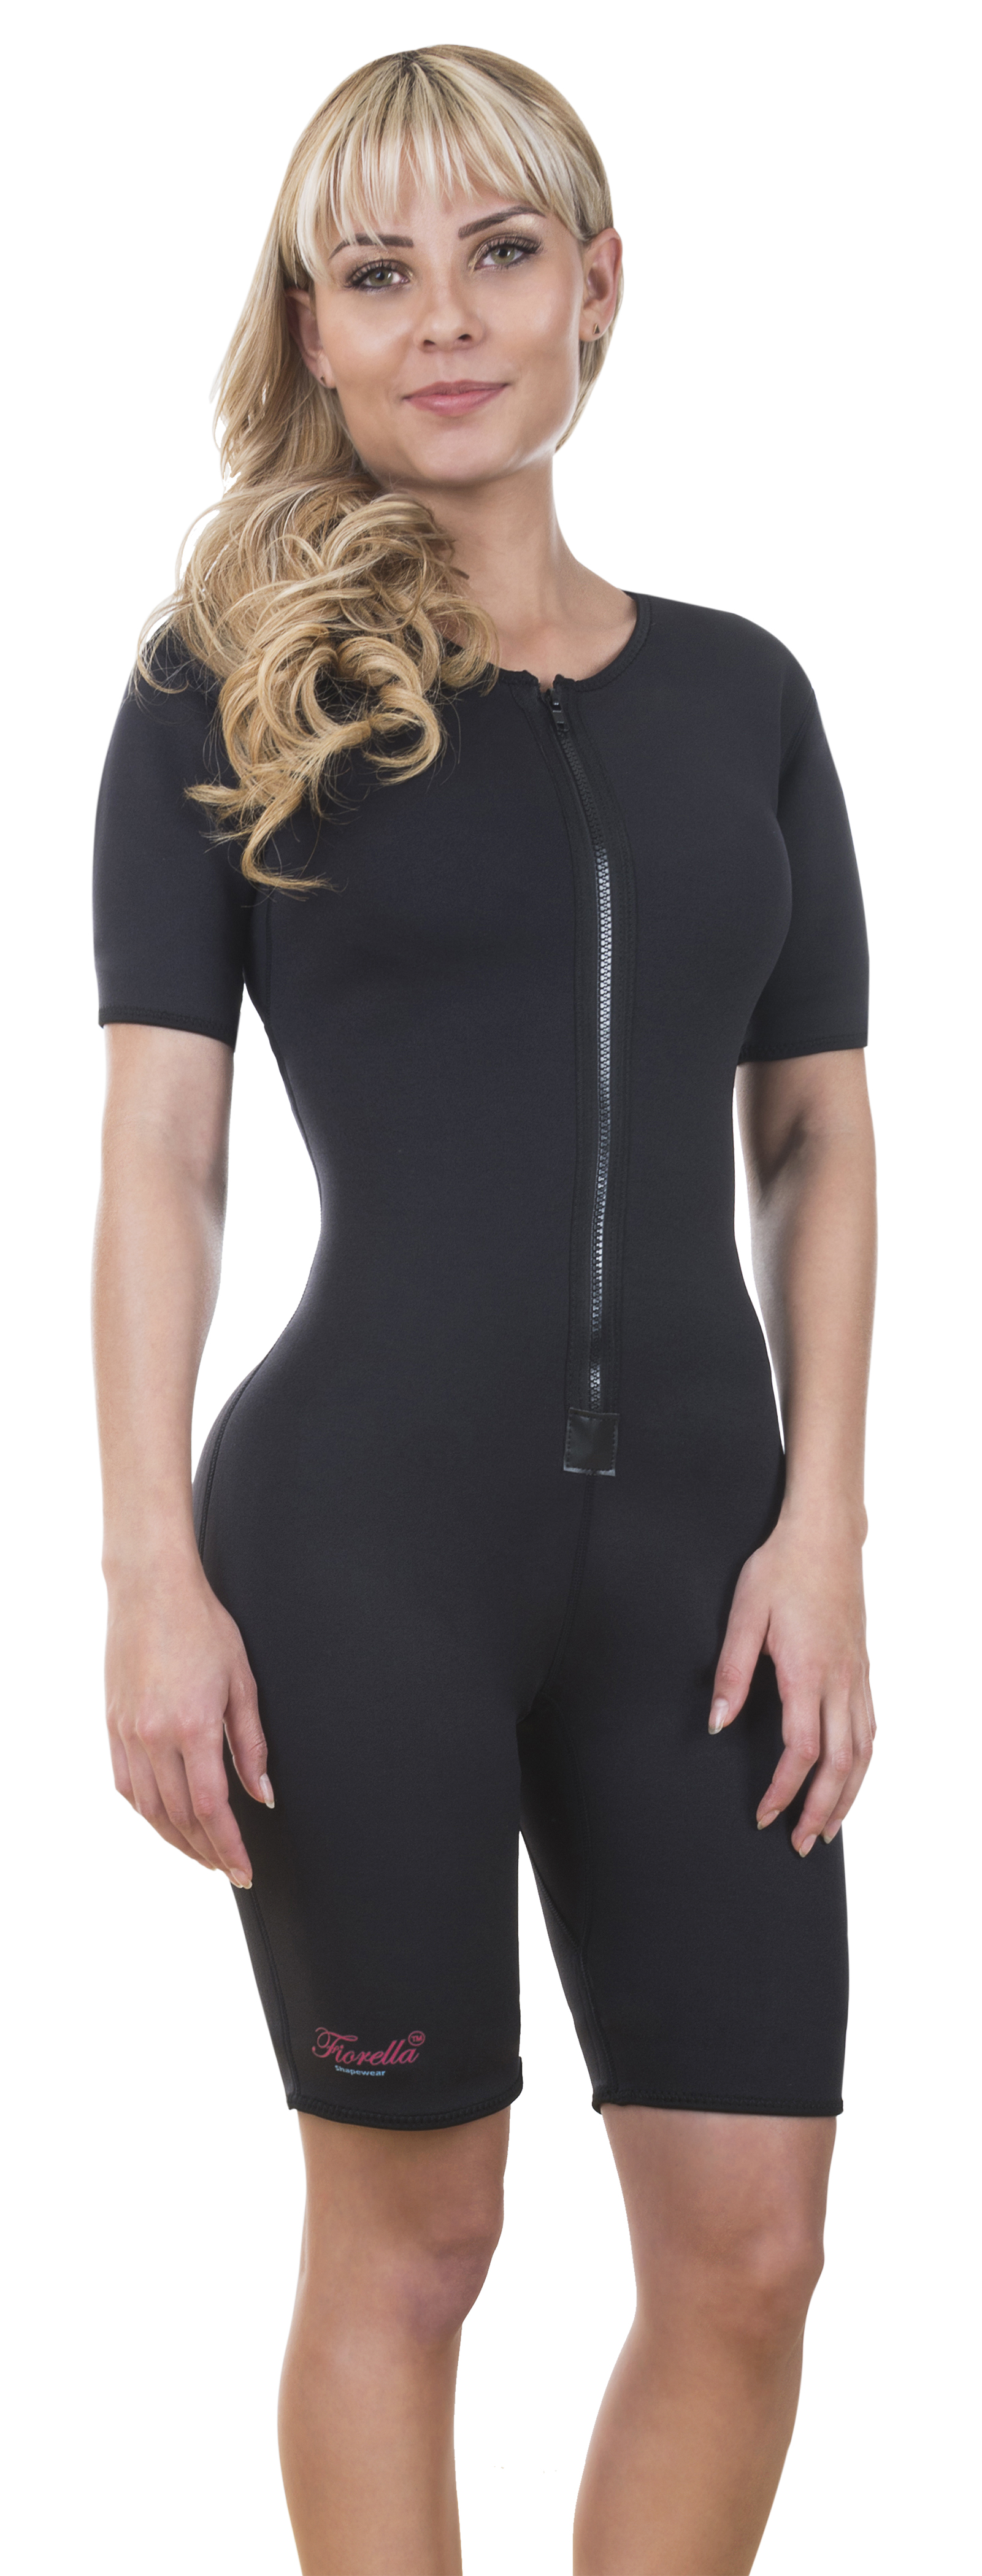 345f649b4a Neo Sweat Slimming Sauna Full Body Suit Sports Neoprene with Sleeves Body  Shaper for Gym Yoga Aerobics Run Workout 305 Small - Walmart.com